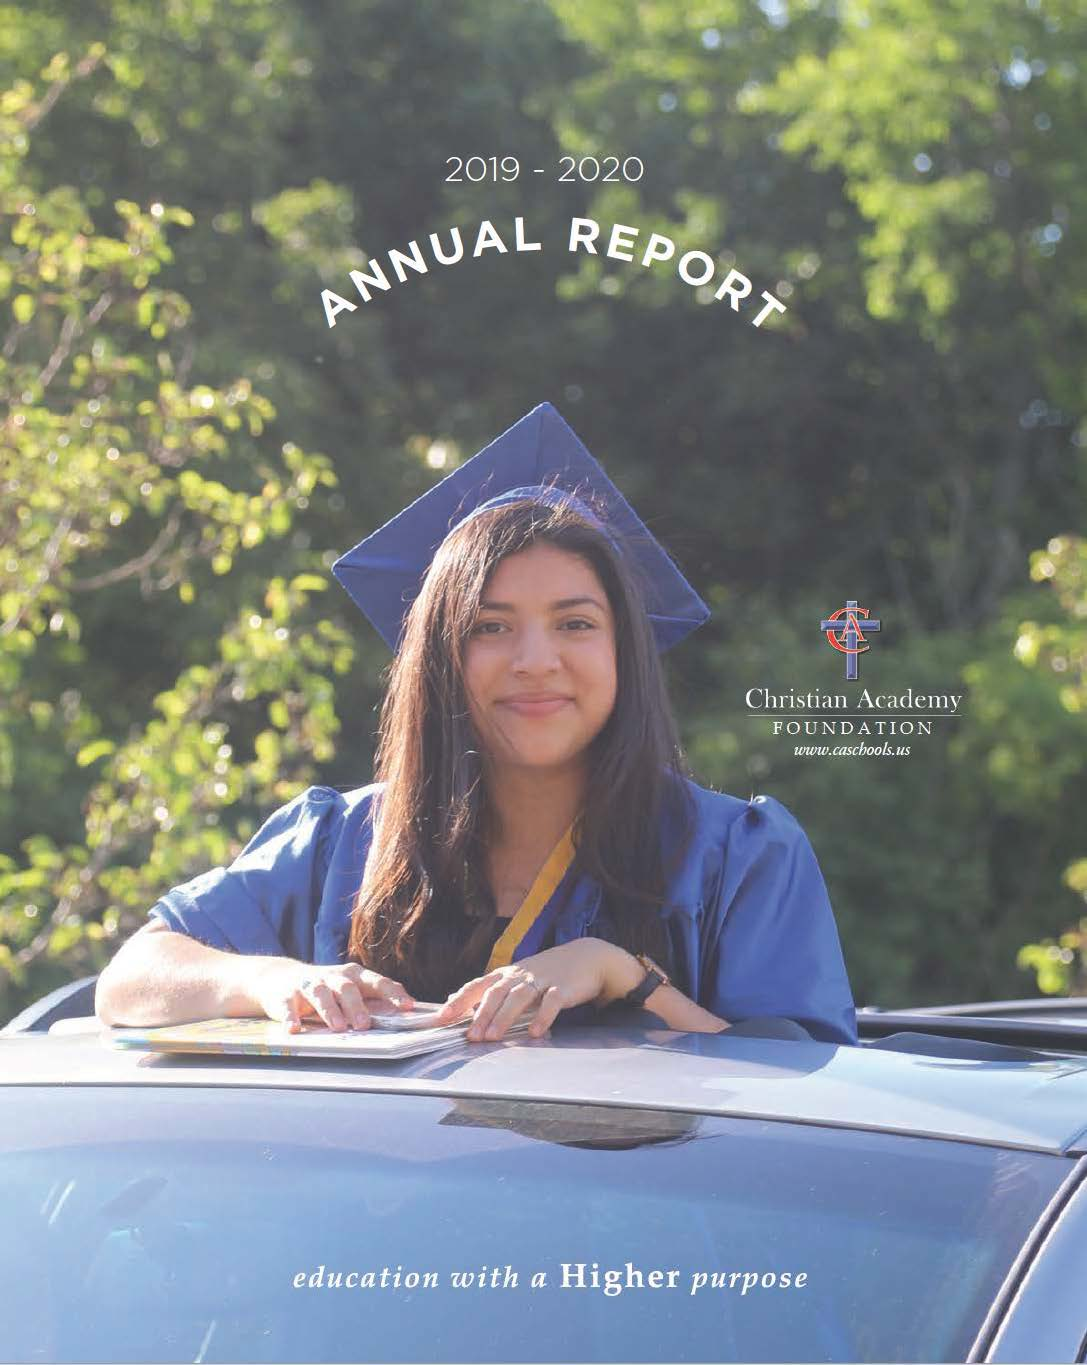 Christian Academy School System | 2020 Annual Report